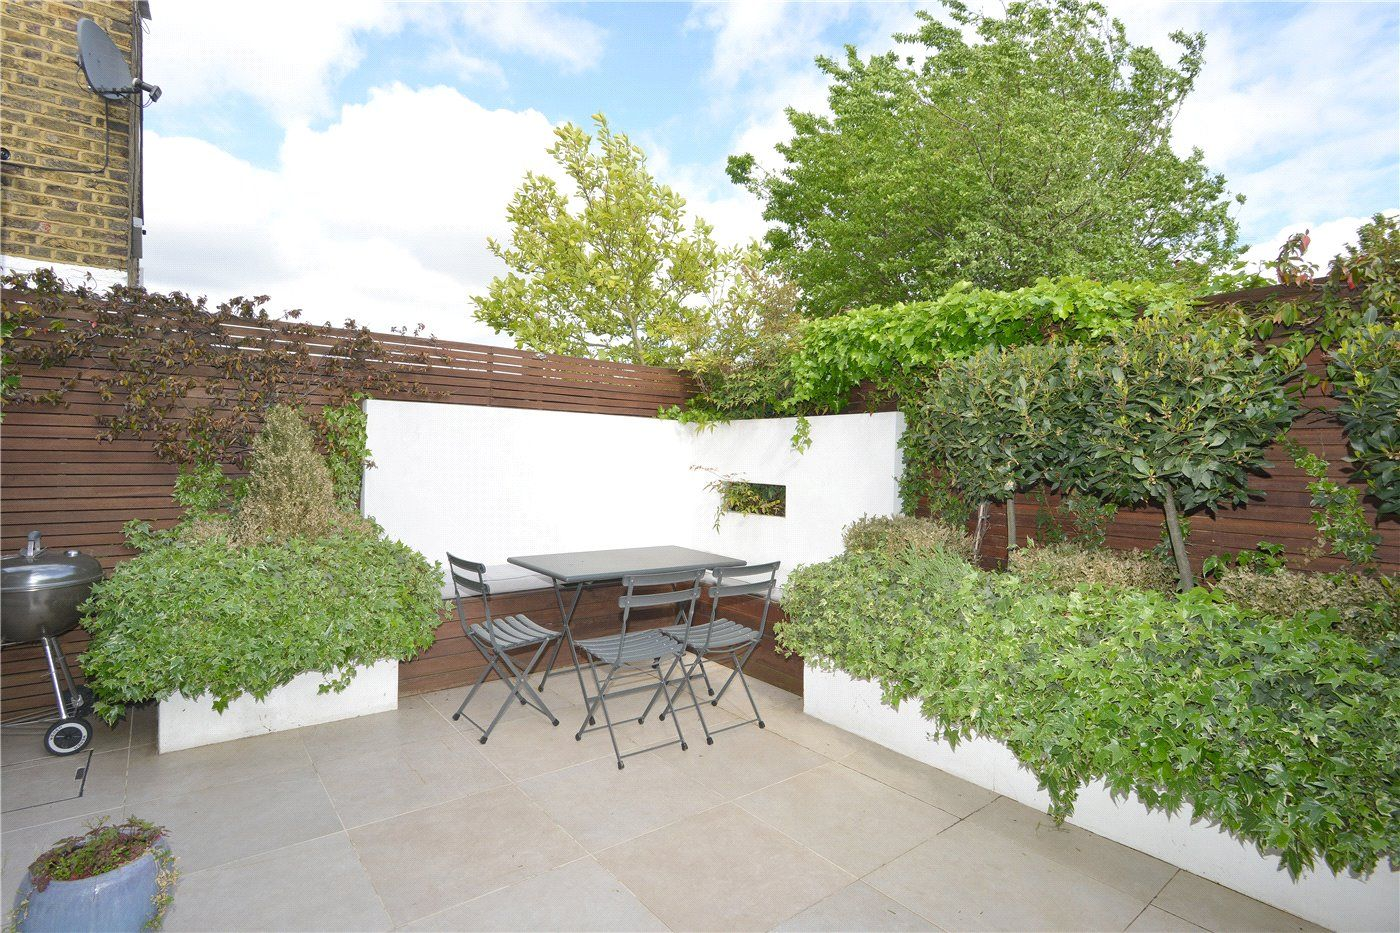 Property photo 1 of 13. Garden Part One